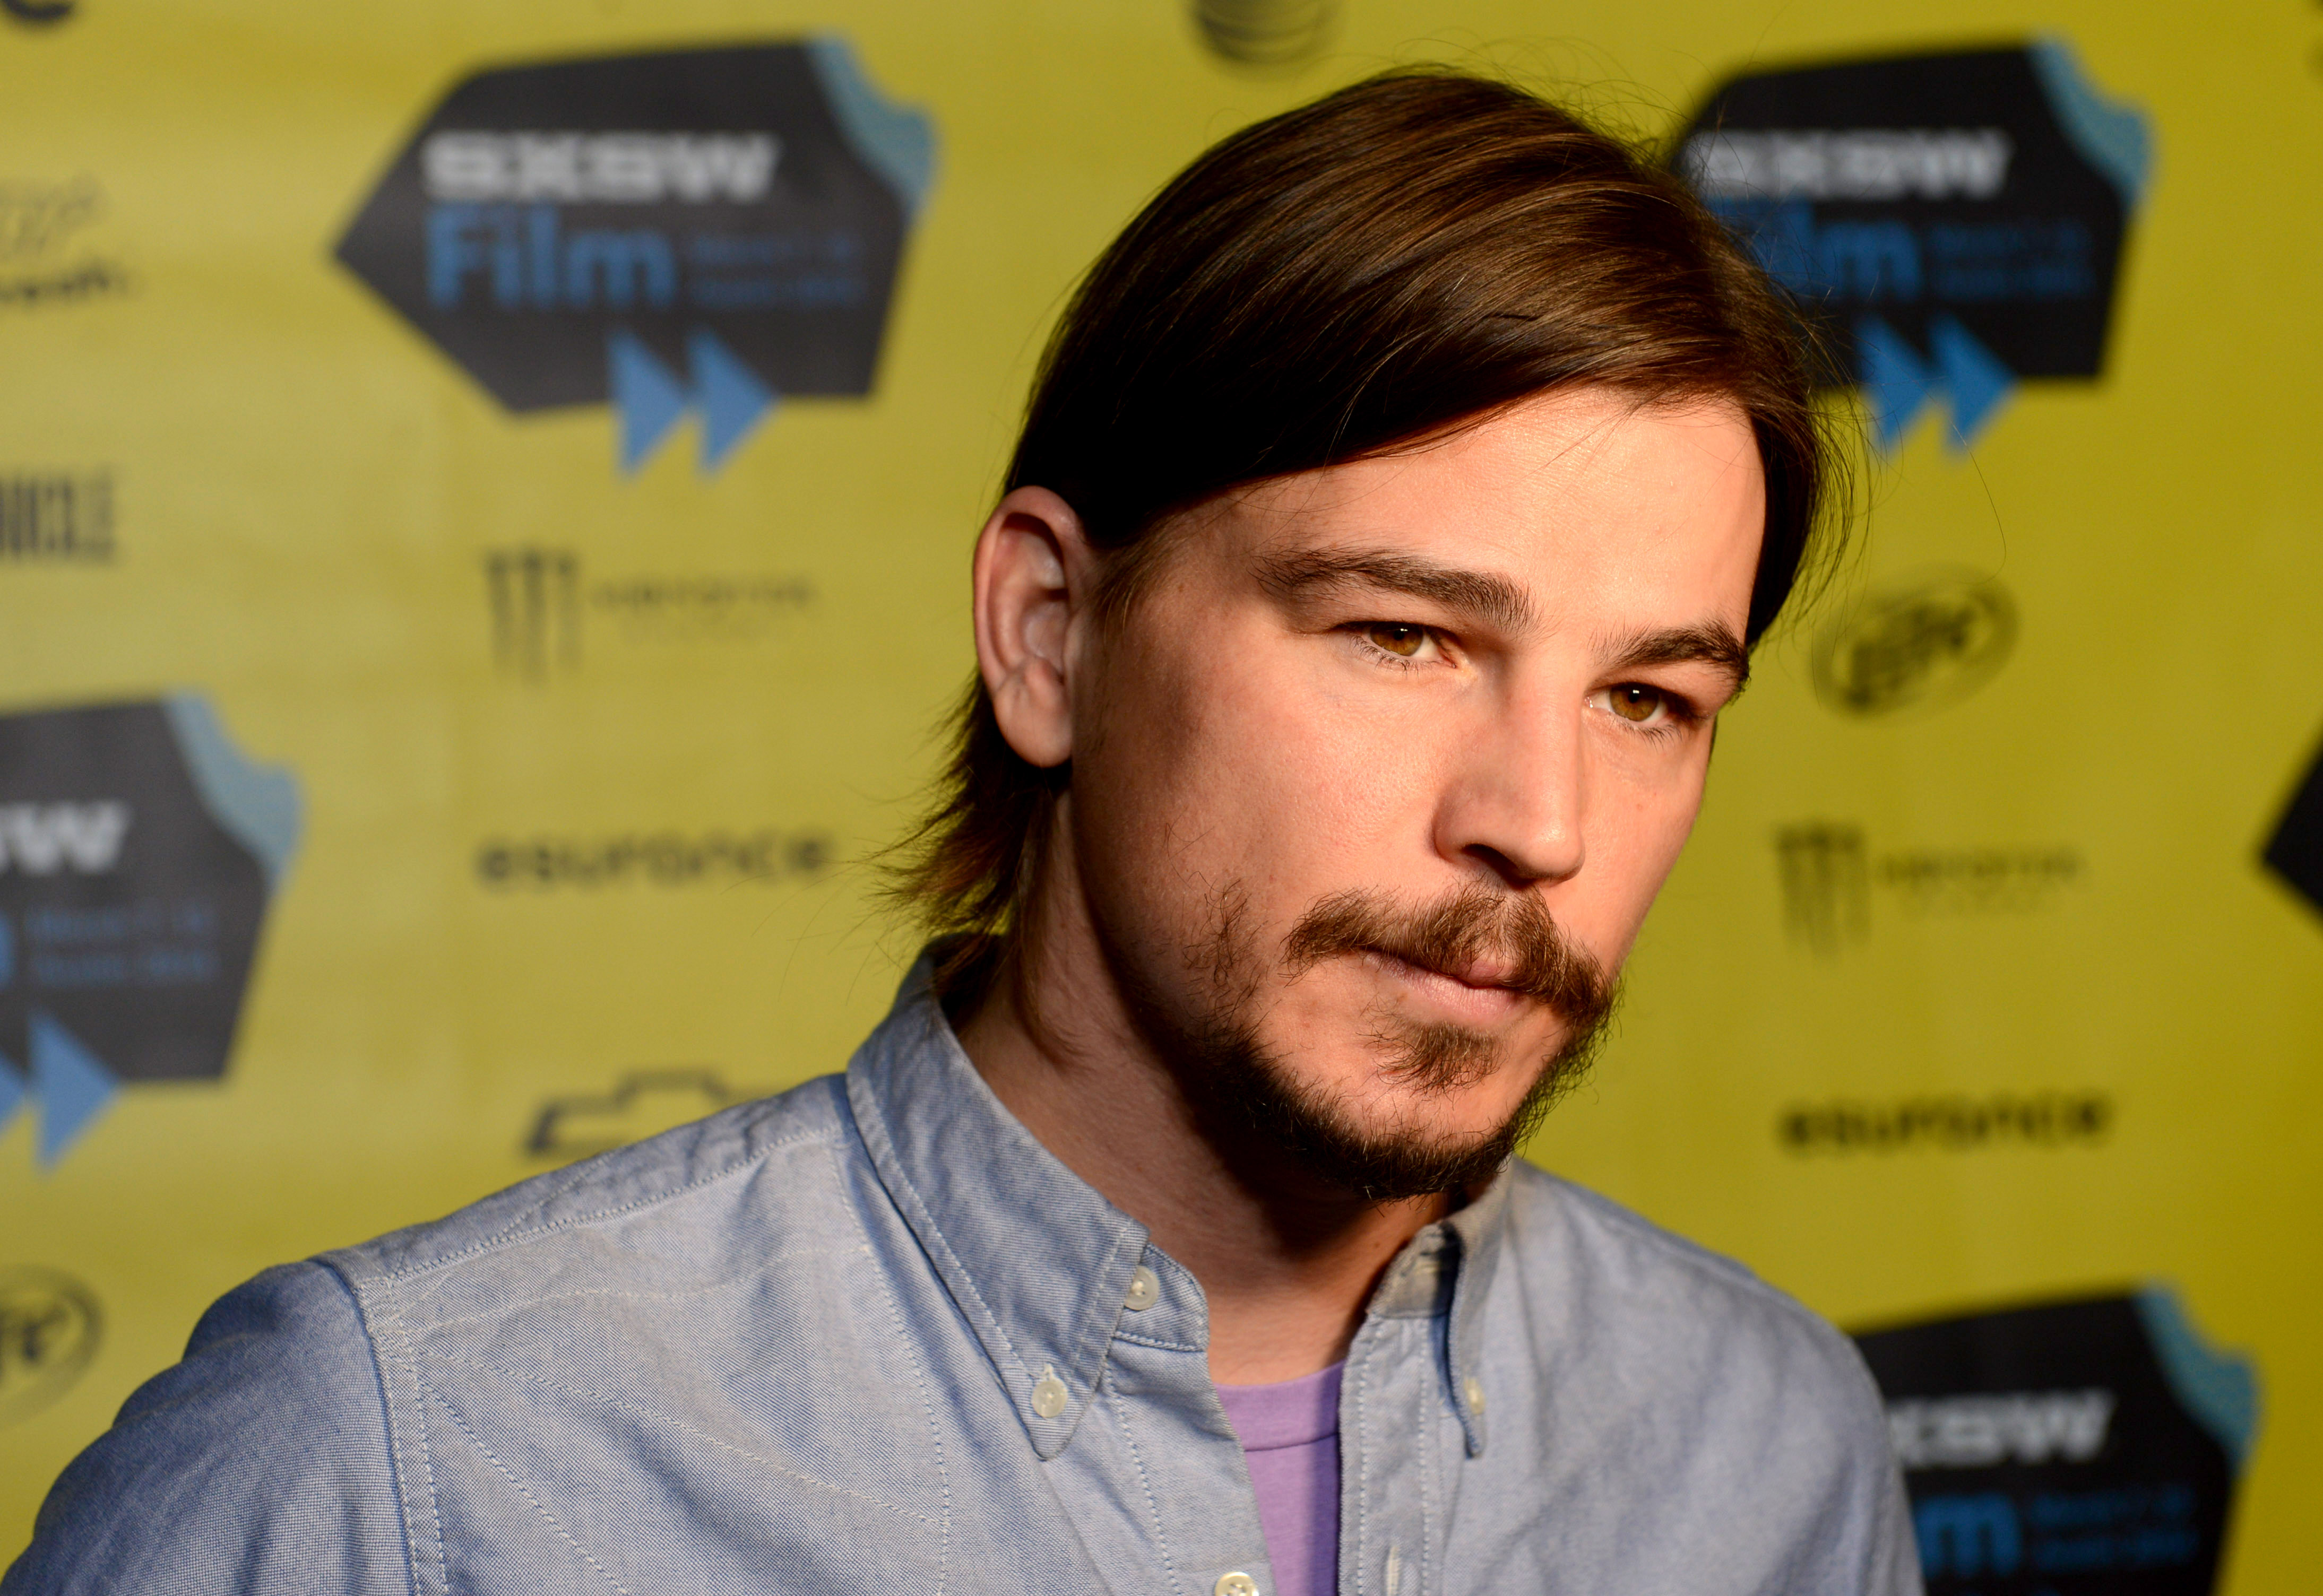 josh hartnett celebrity wide hd wallpaper 65749